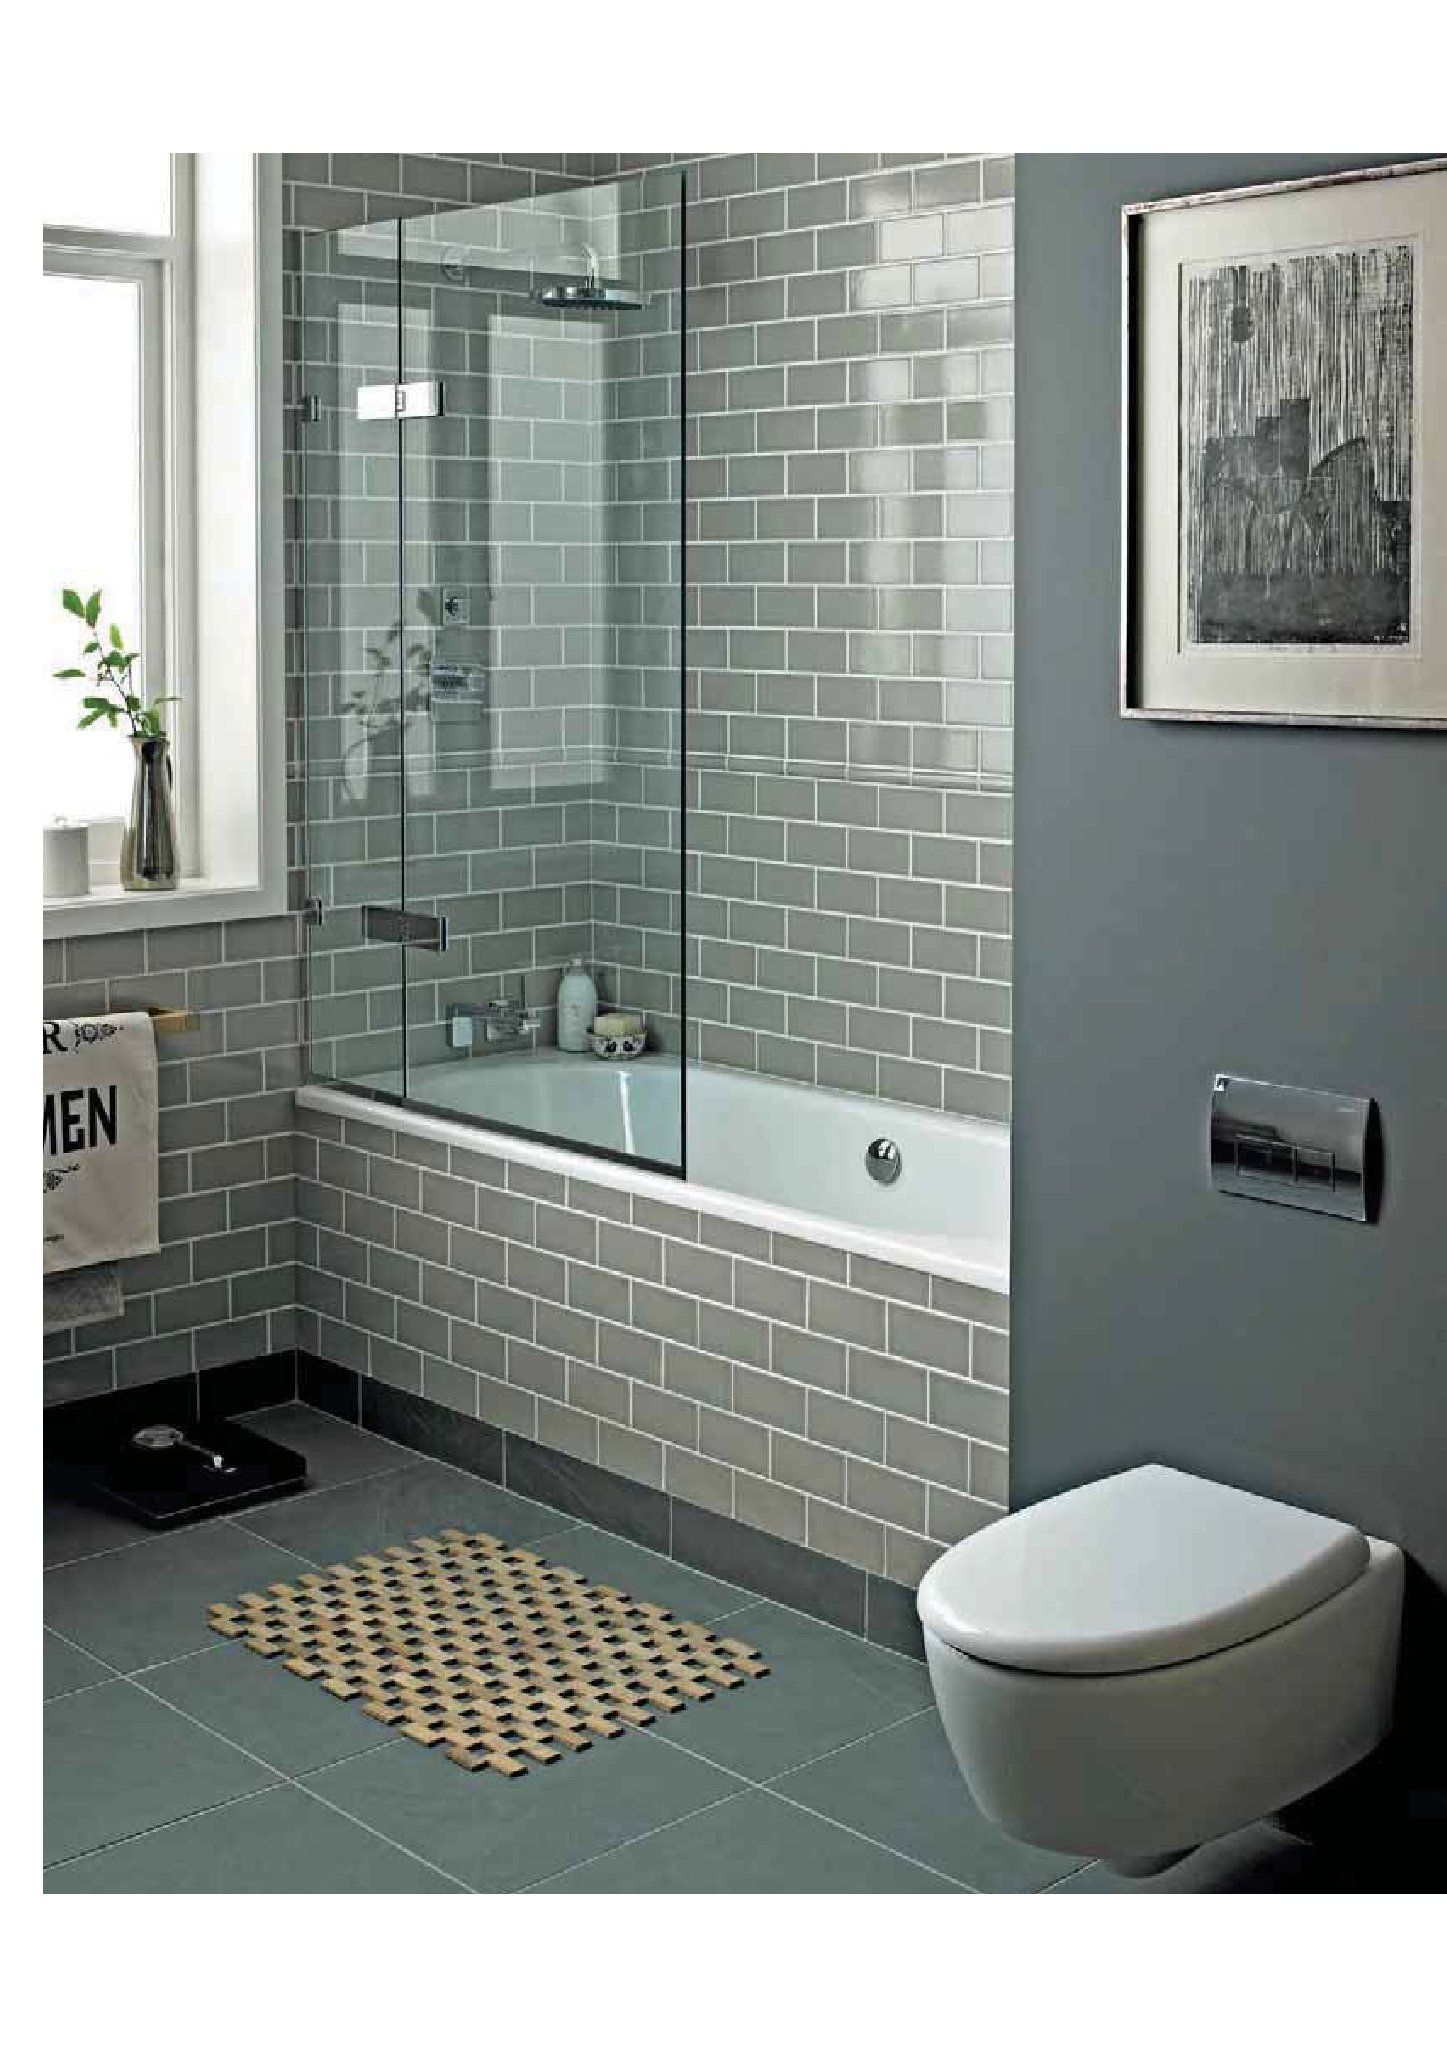 panel door bathroom bathtub framed enclosures glass shower frameless doors and enclosure tub